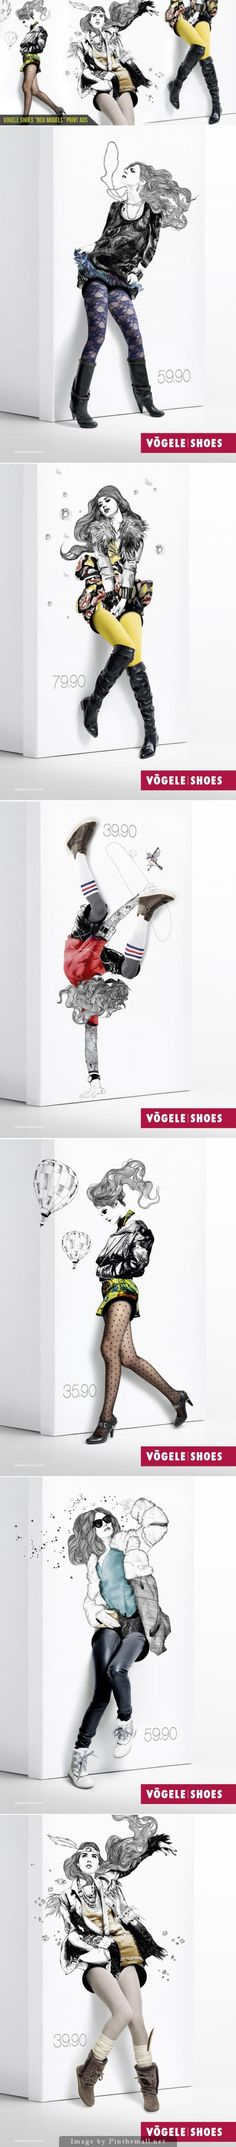 Integrating fashion and packaging in these lovely shoebox model ads by Jung Von Matt / Limmat for Voegel shoes curated by Packaging Diva PD